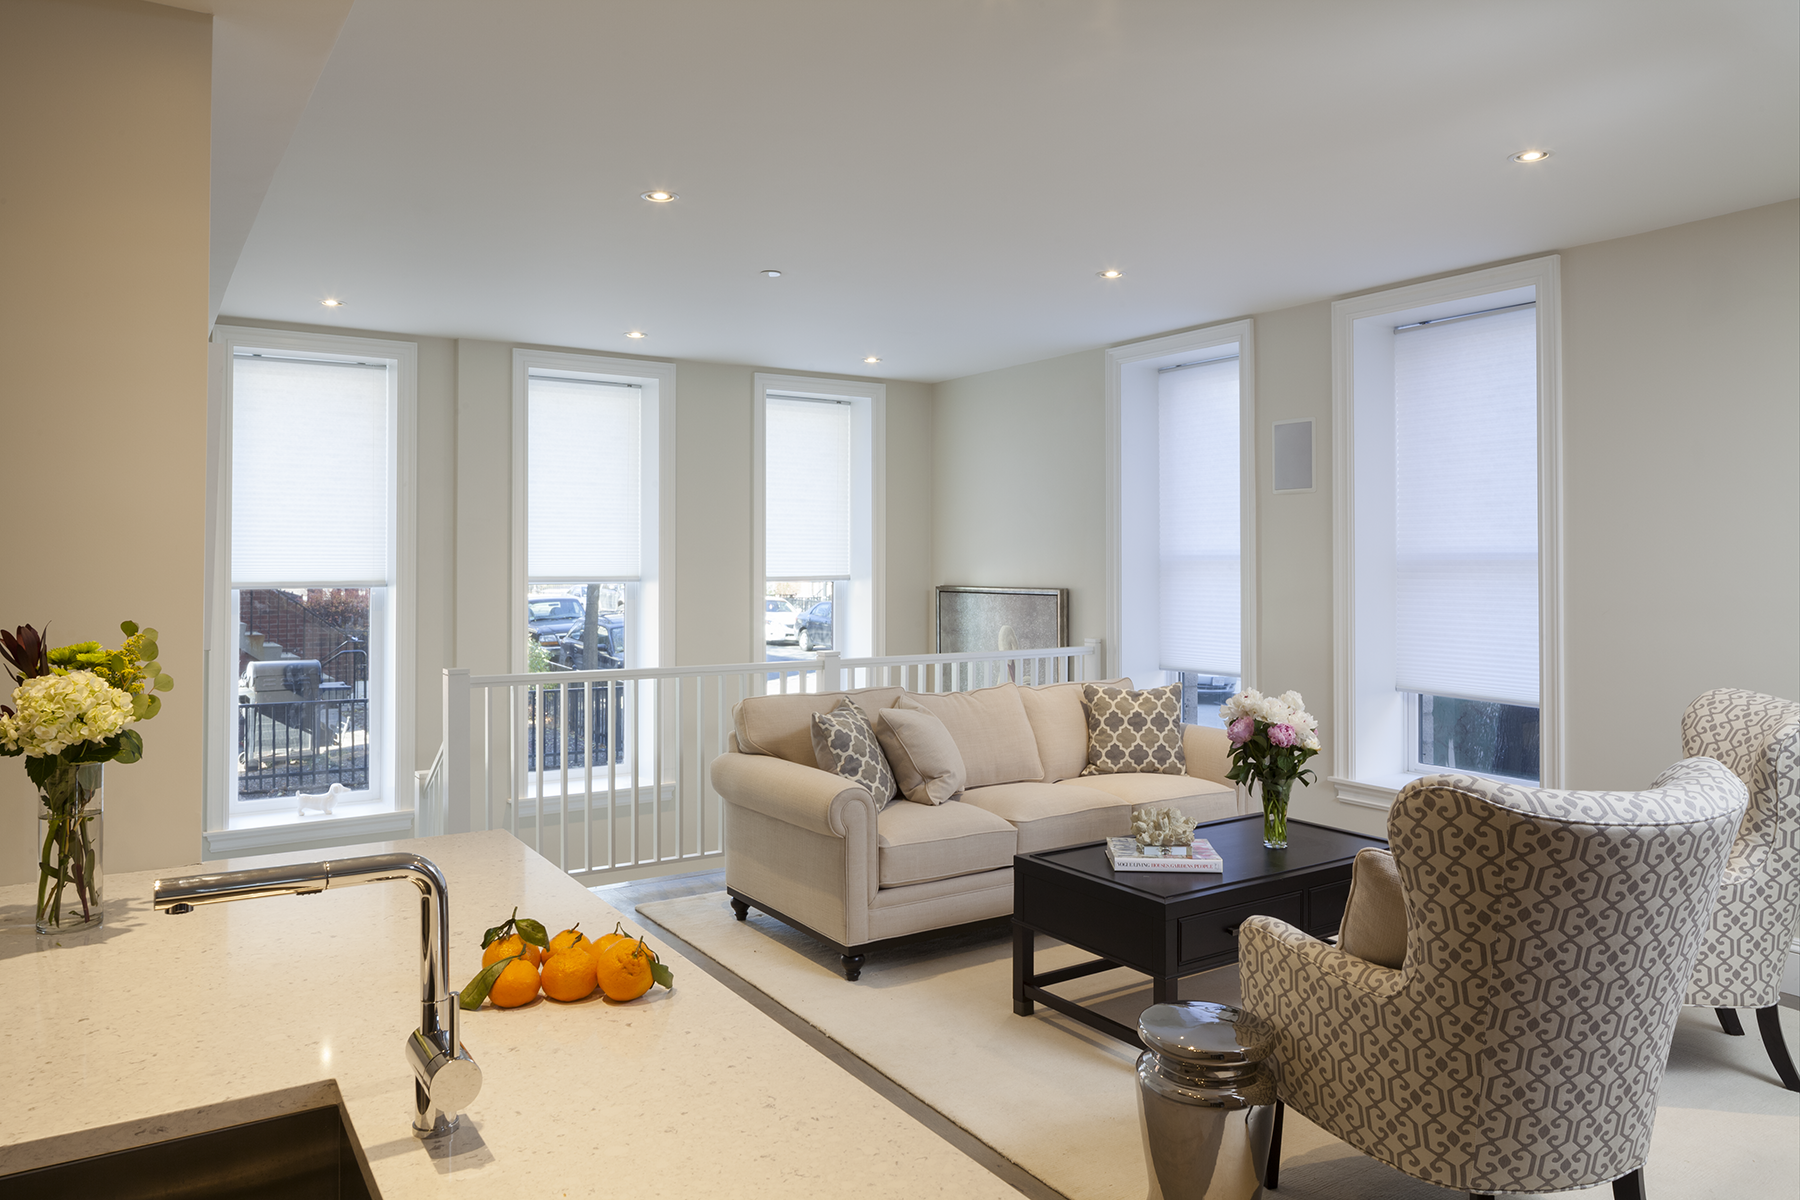 A large living room sits on the second floor with a beige couch and chair. Five large windows with white trim line the room, showing sites of the Boston skyline.